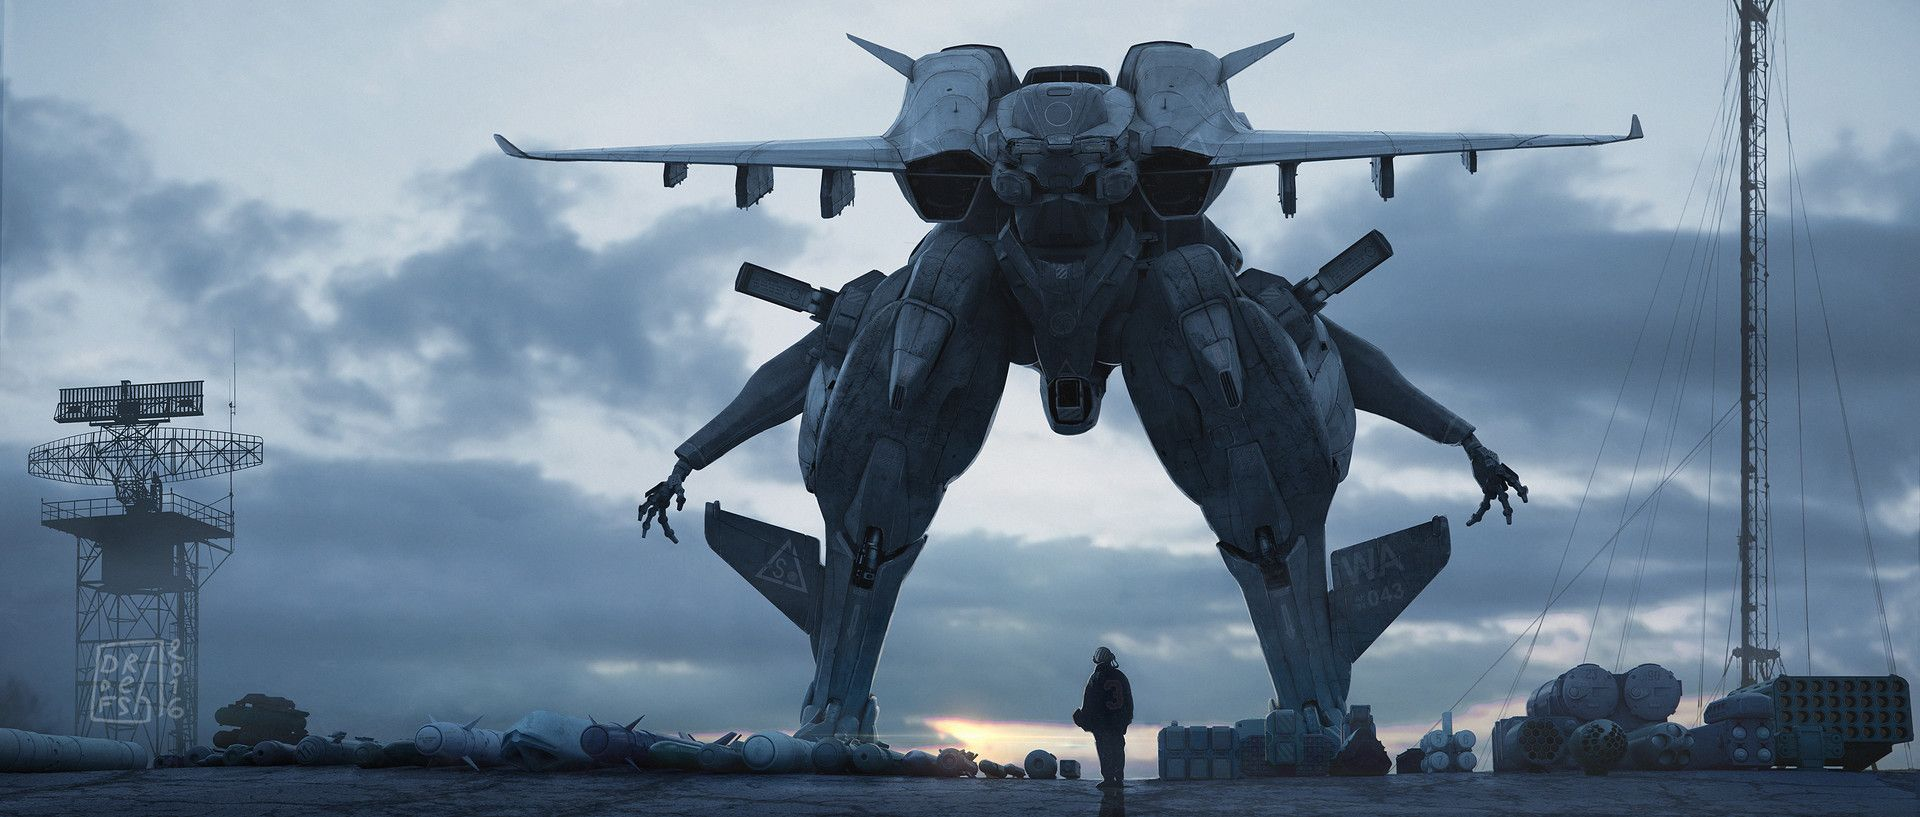 ArtStation - So many tons of democracy waiting to get delivered, _ DOFRESH _